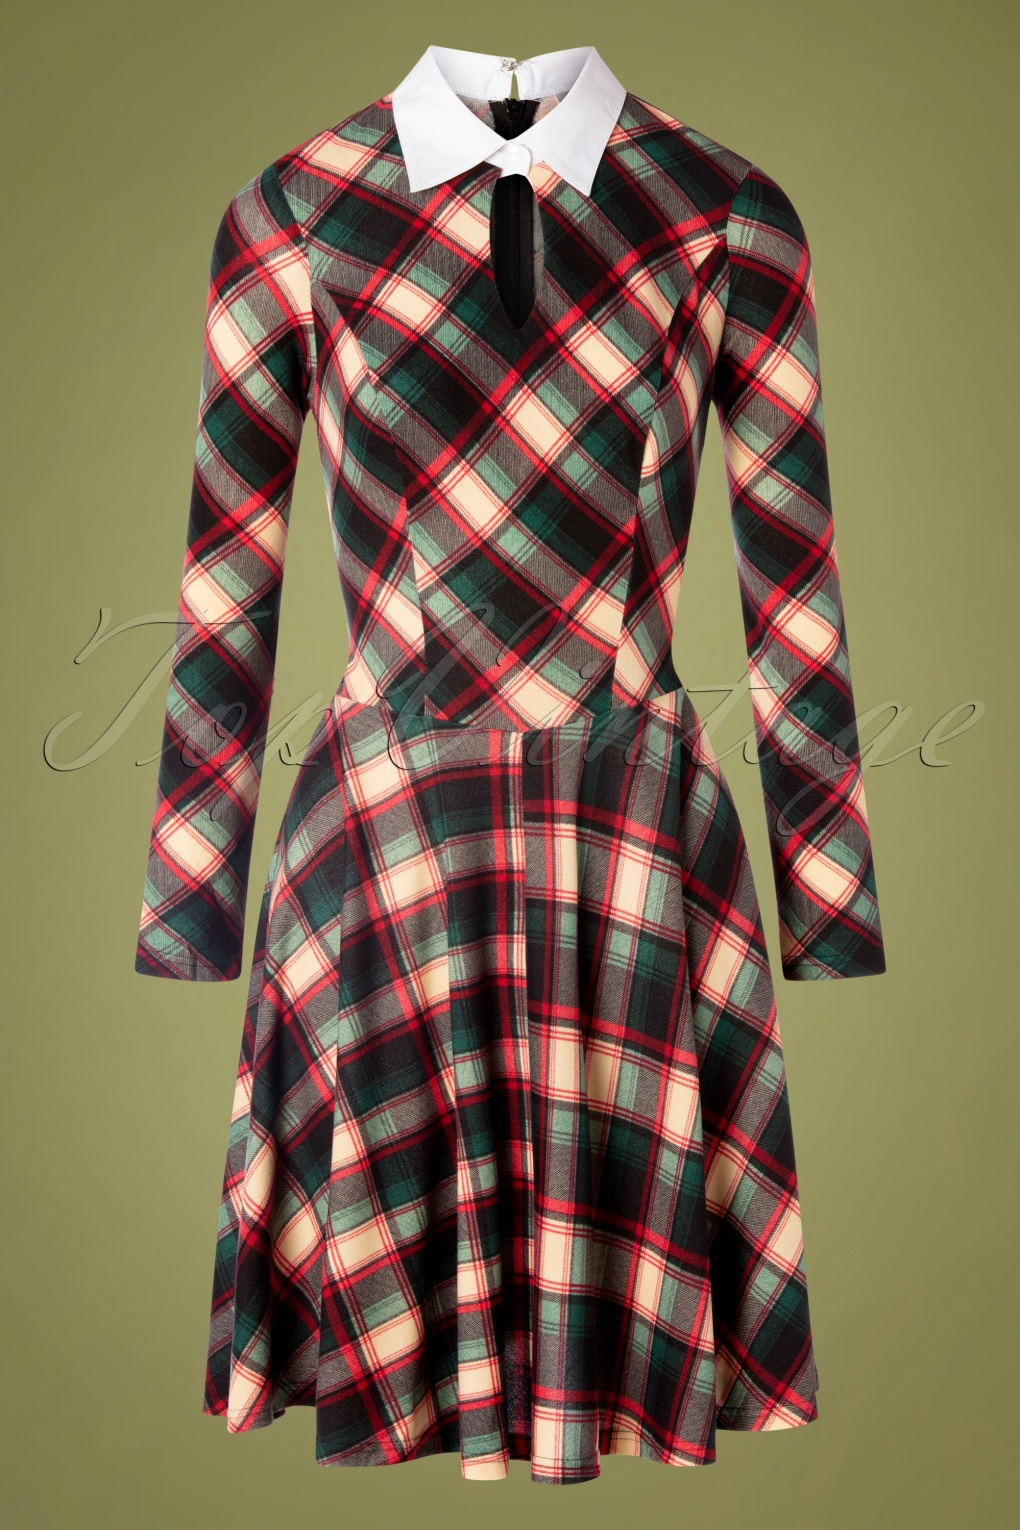 Fifties Dresses : 1950s Style Swing to Wiggle Dresses 50s Wednesday Swing Dress in Green Plaid £89.75 AT vintagedancer.com